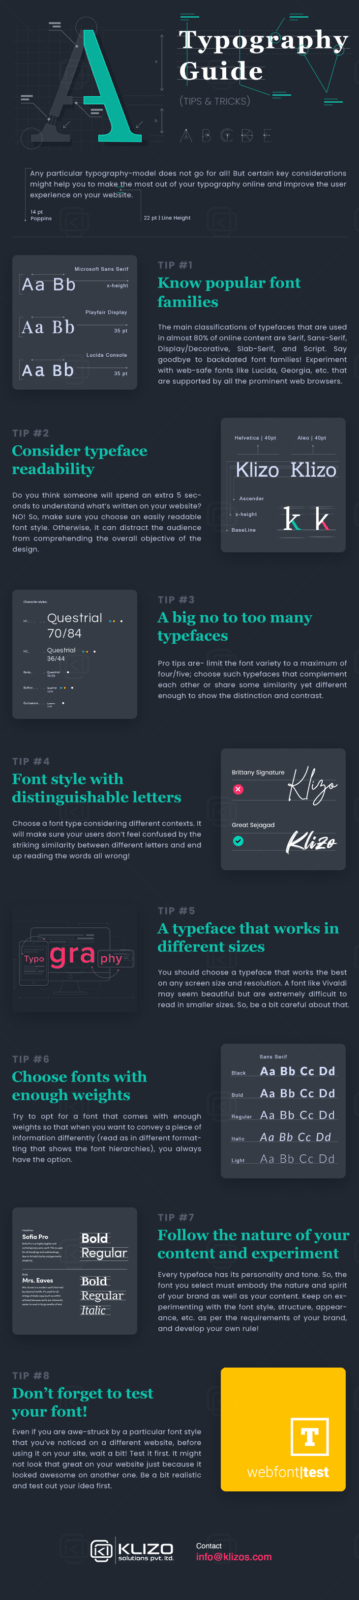 Typography guide - INFOGRAPHIC